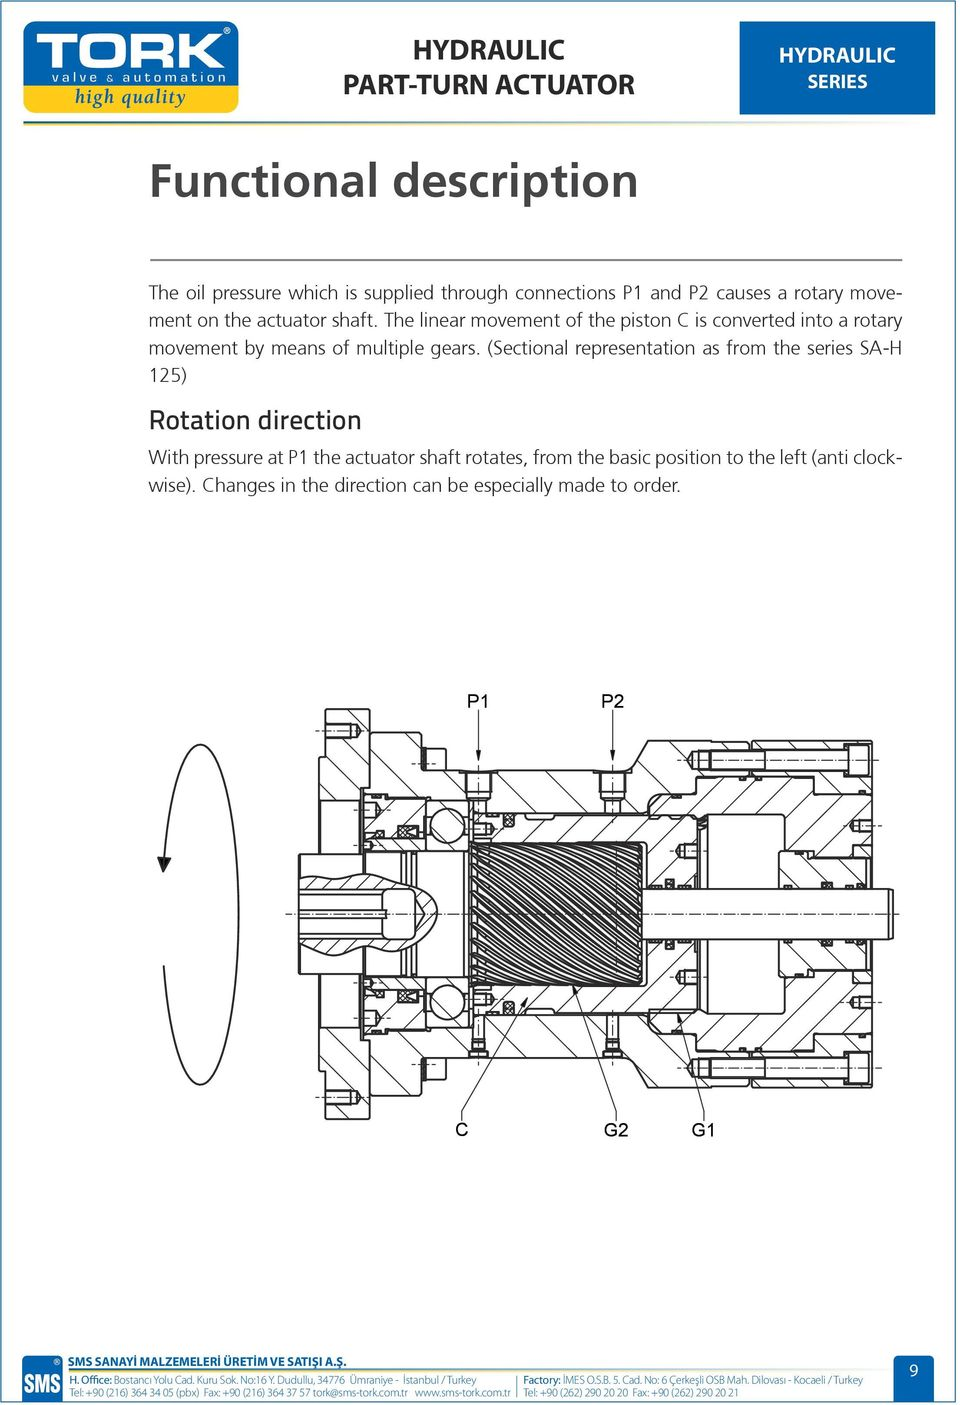 (Sectional representation as from the series 125) Rotation direction With pressure at P1 the actuator shaft rotates, from the basic position to the left (anti